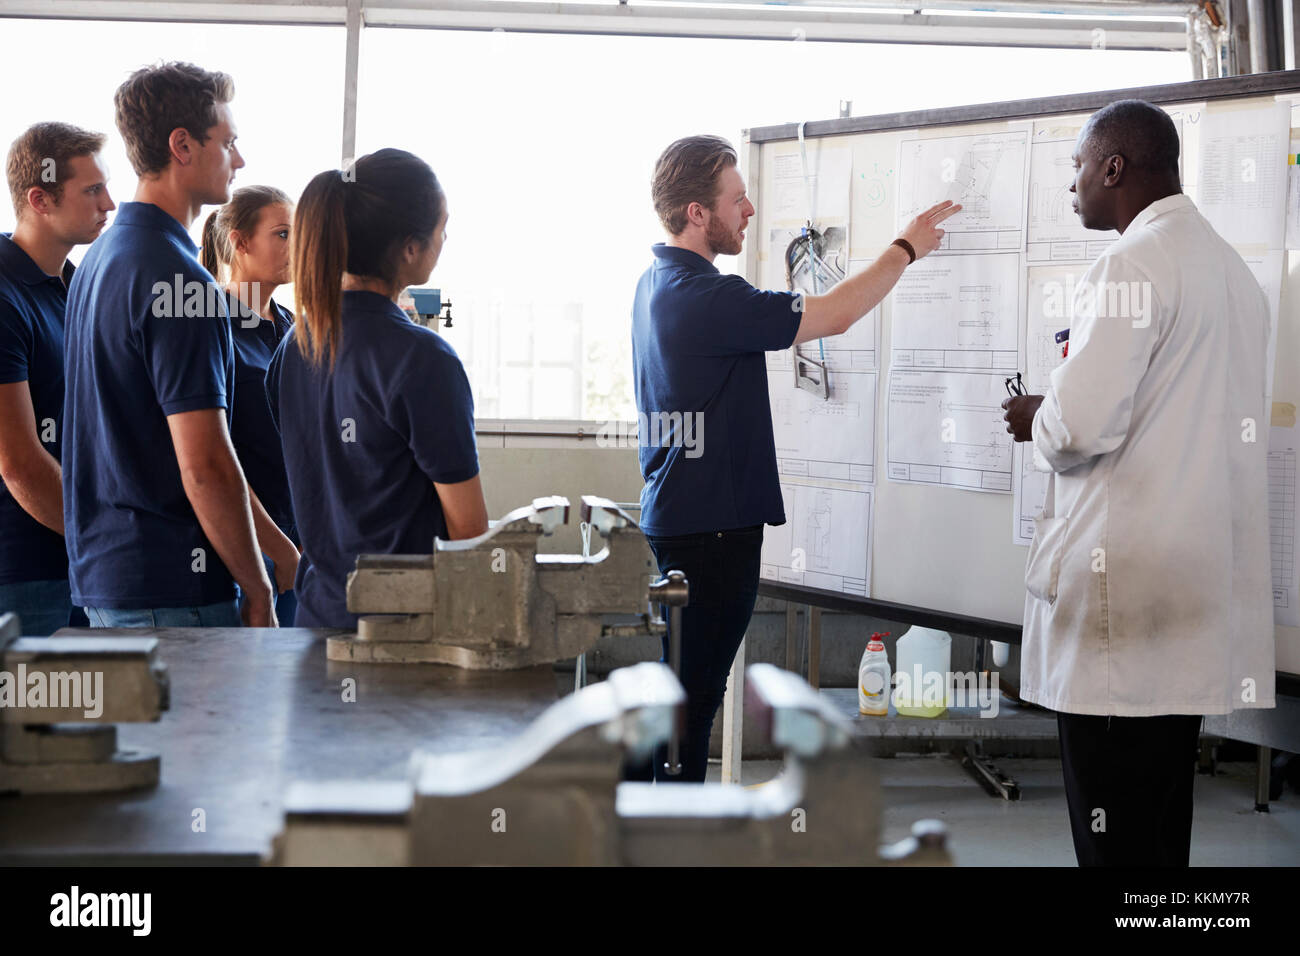 Engineering apprentice presenting to group at whiteboard - Stock Image